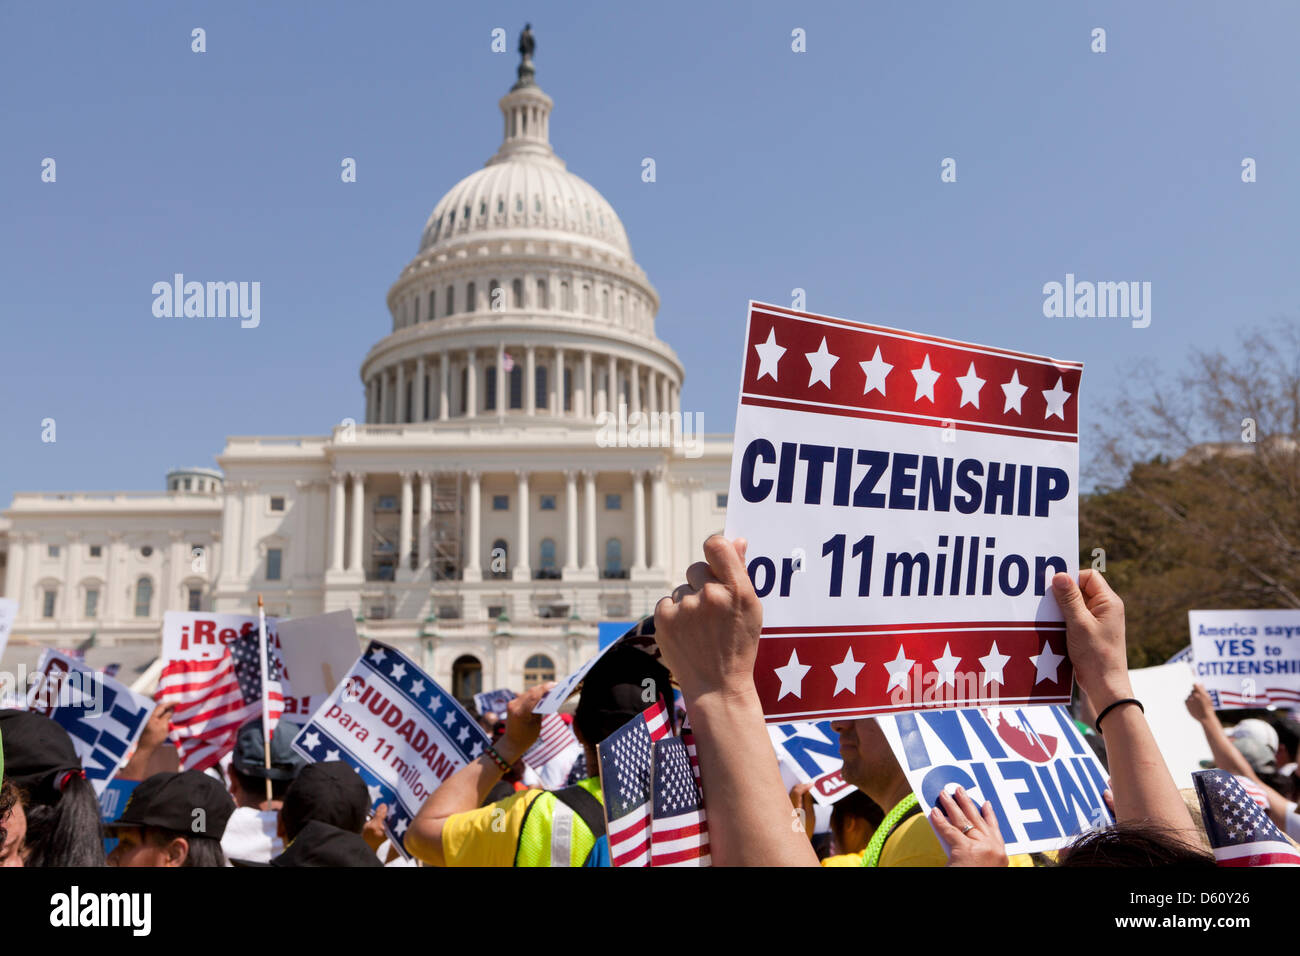 Large crowd waving Mexican and American flags at an immigration rally in Washington DC - Stock Image